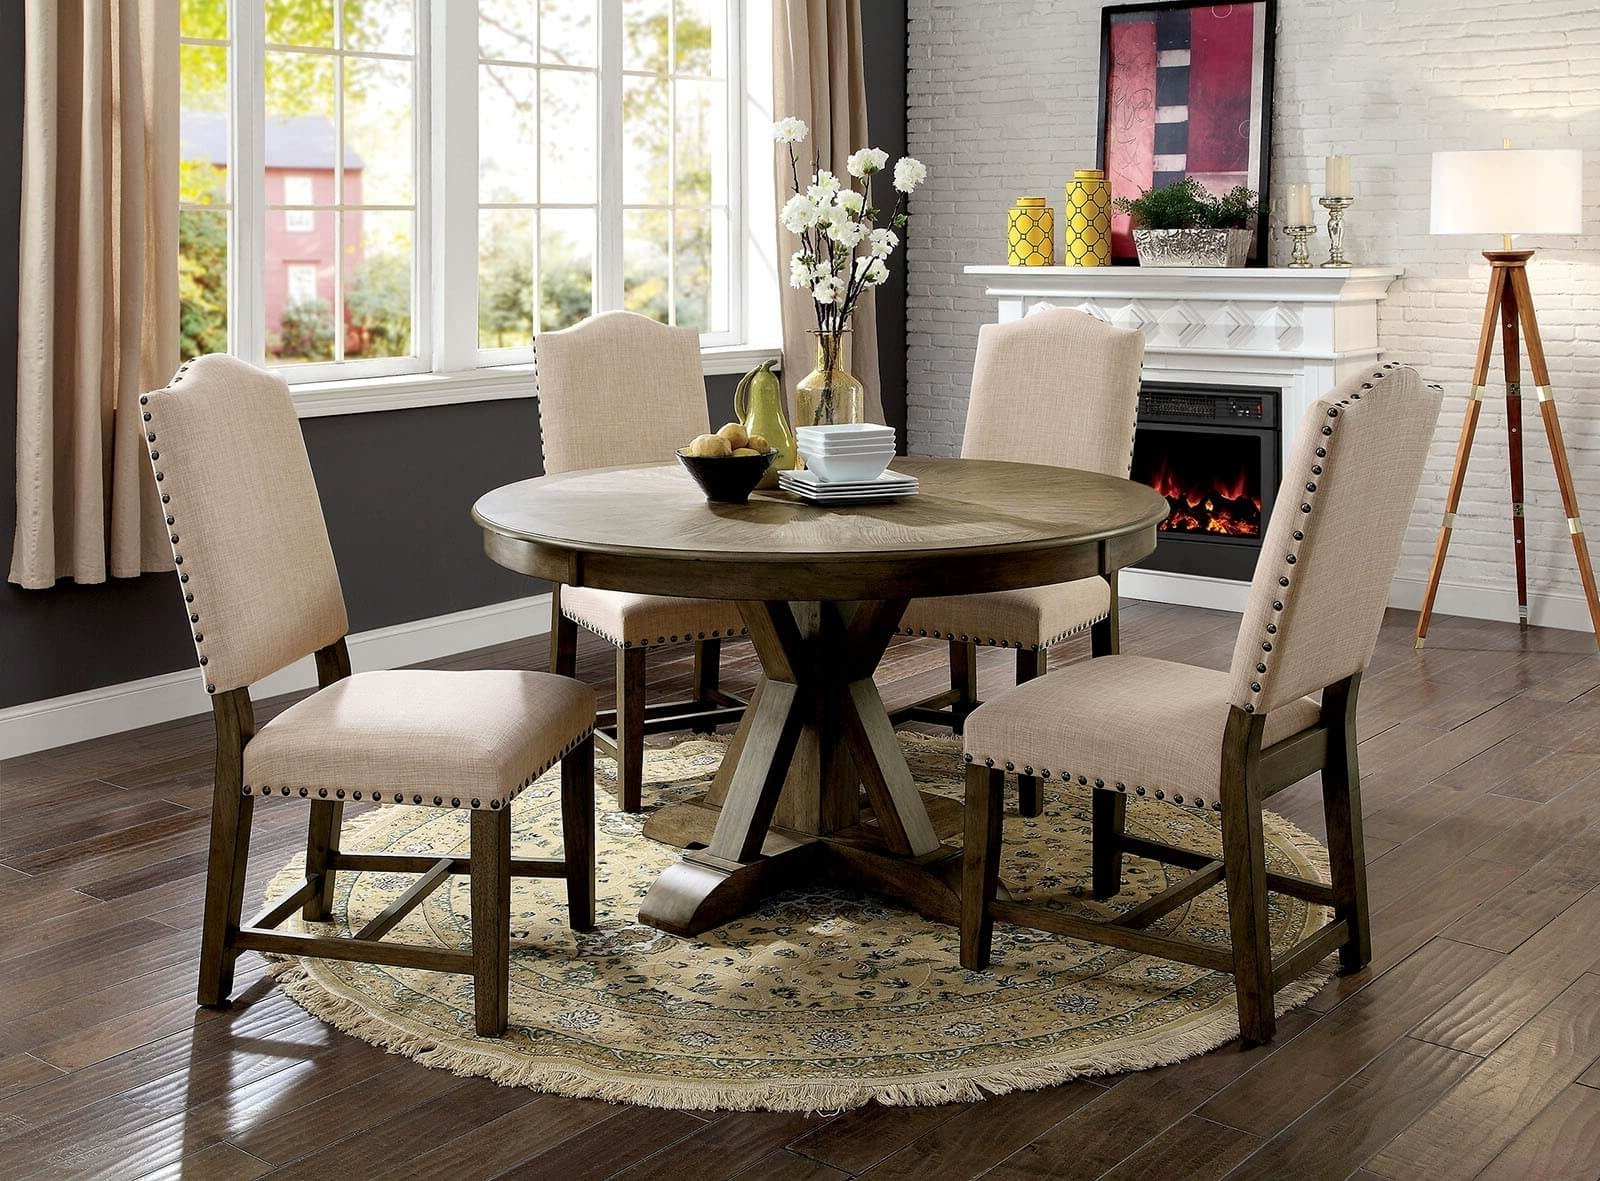 5 Piece Julia Round Dining Set Light Oak Finish – Usa Warehouse Pertaining To Most Recently Released Valencia 5 Piece Round Dining Sets With Uph Seat Side Chairs (Gallery 18 of 25)